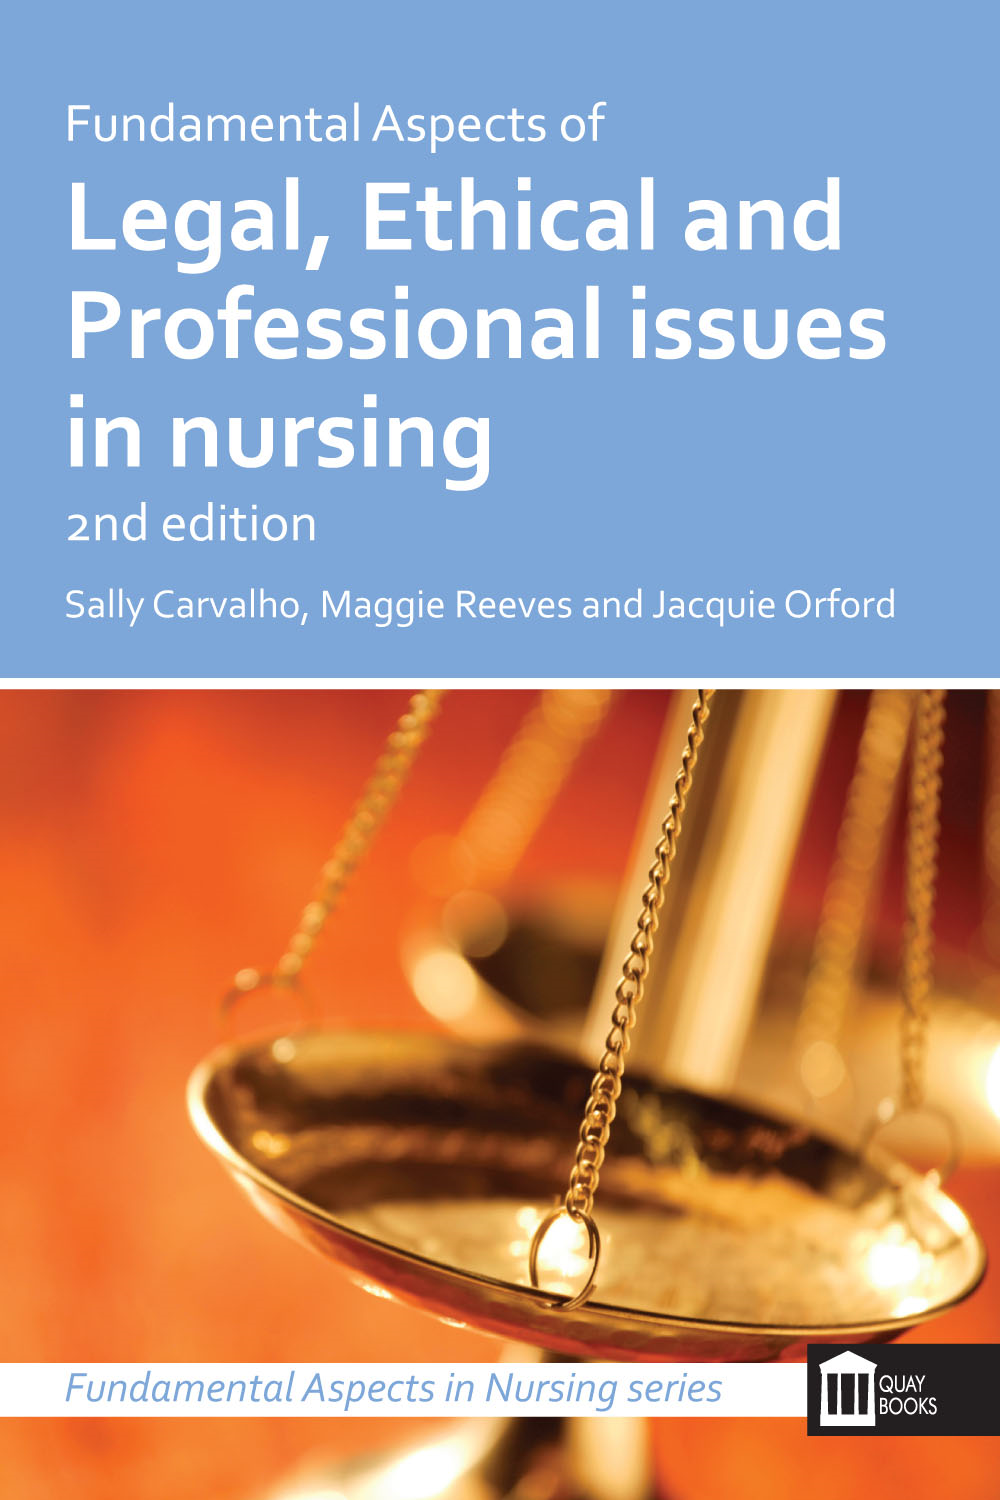 professionalism in the health field essay